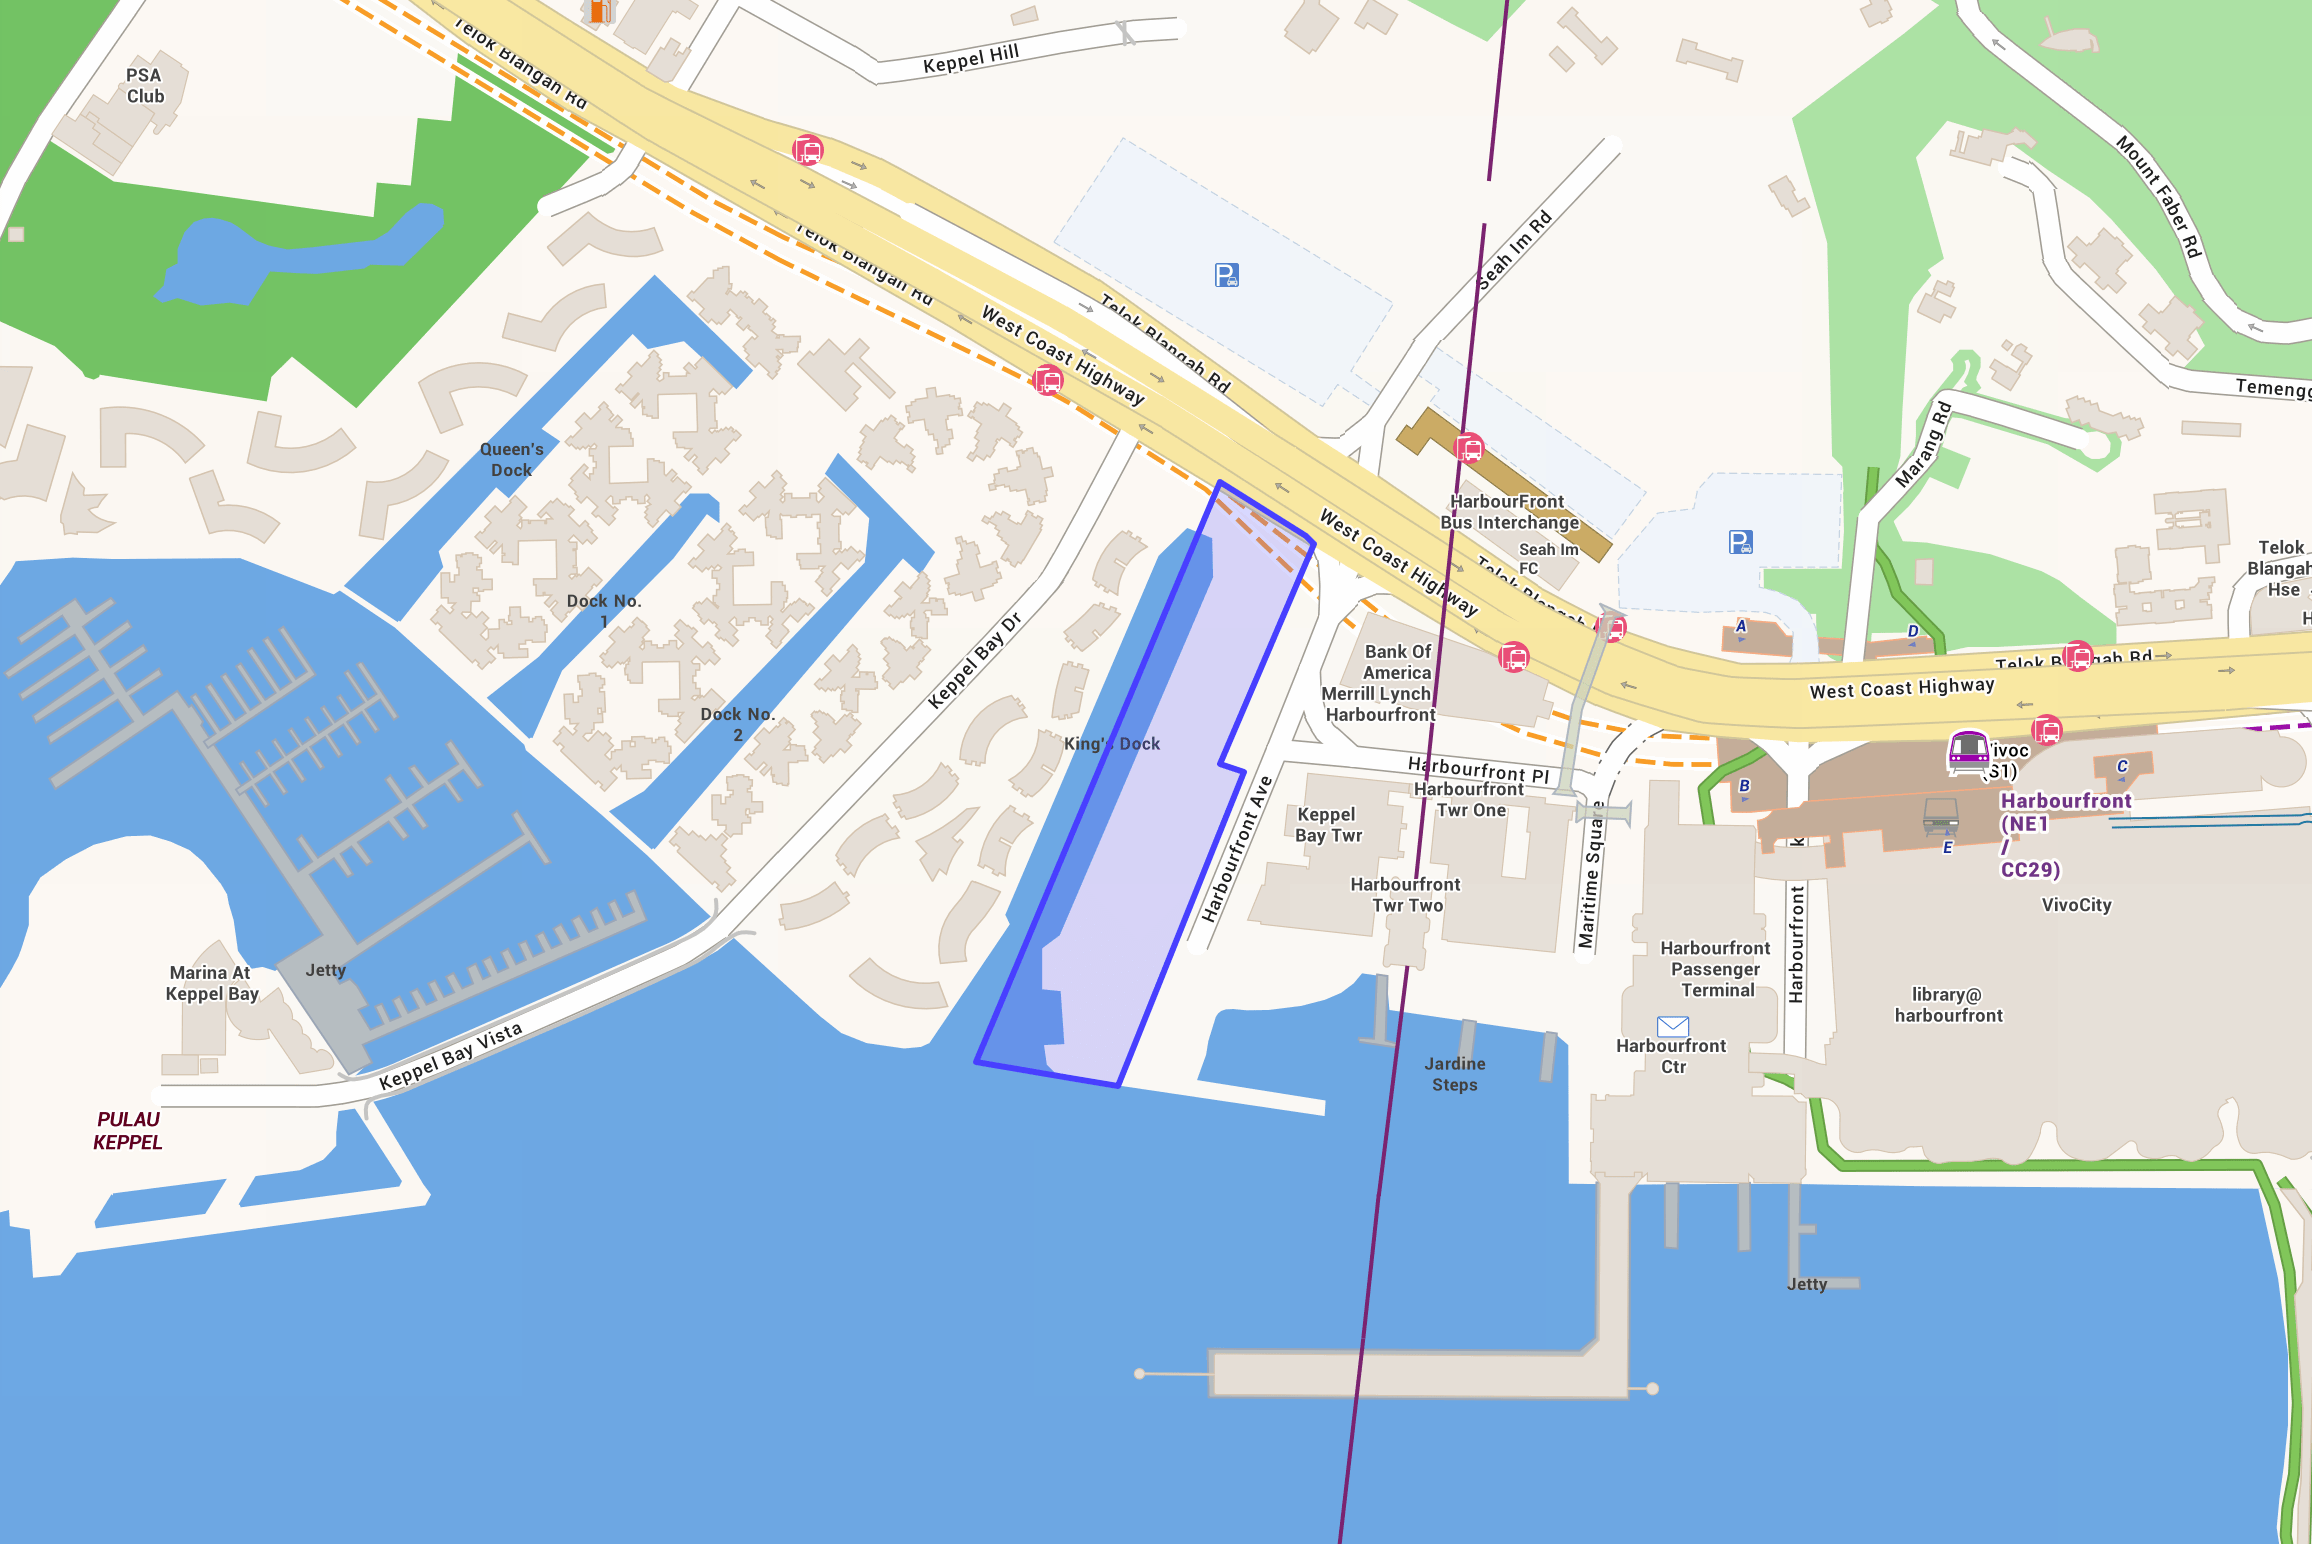 Exact Location of The Reef at King's Dock